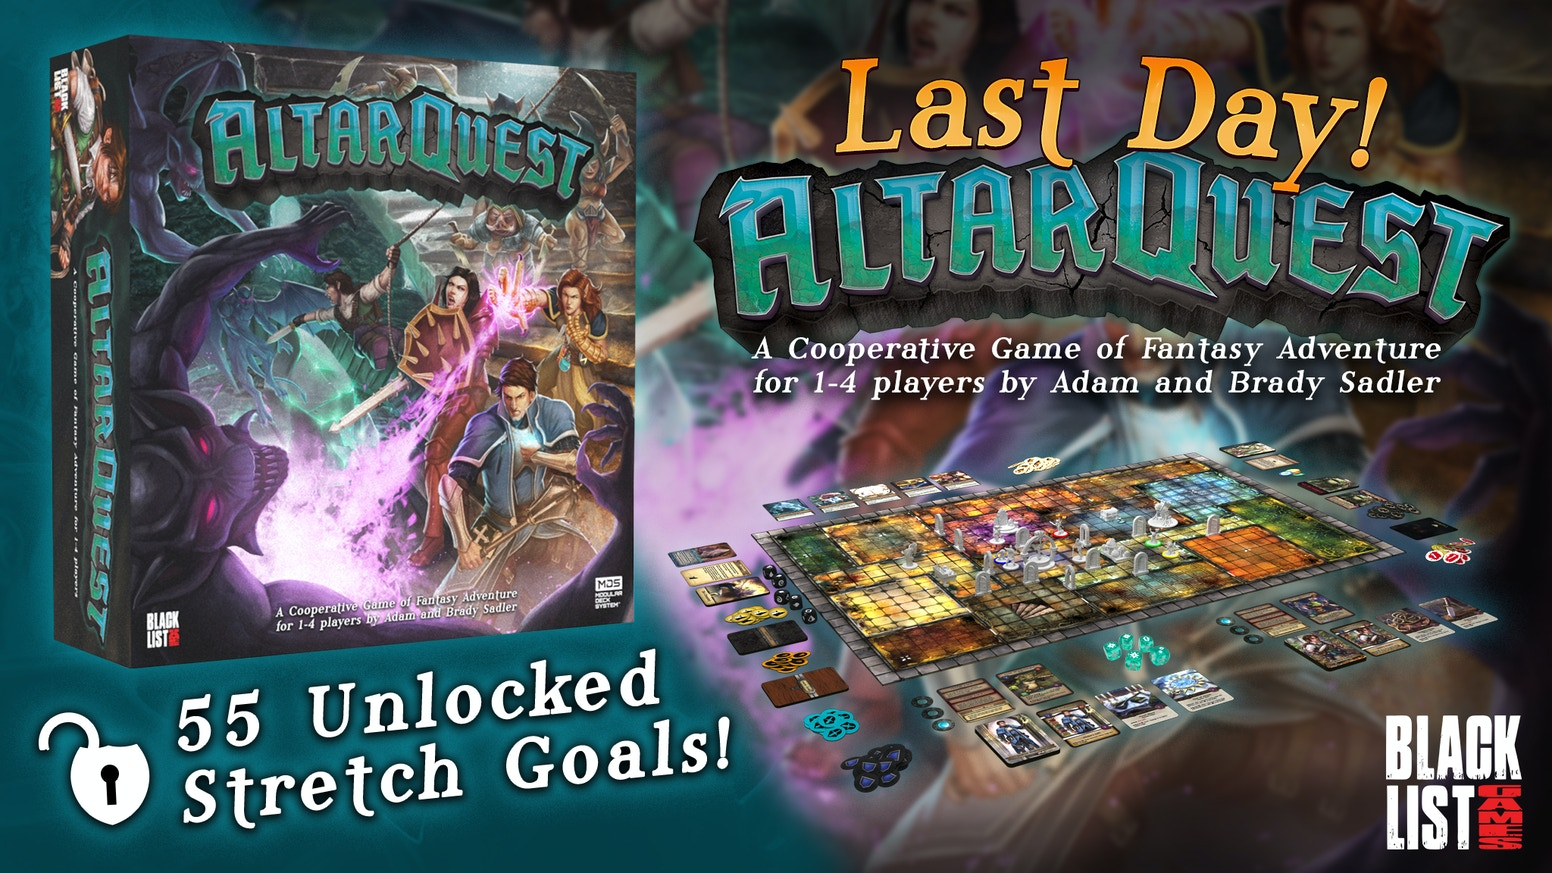 A cooperative game of fantasy adventure for 1-4 players designed by Adam and Brady Sadler.